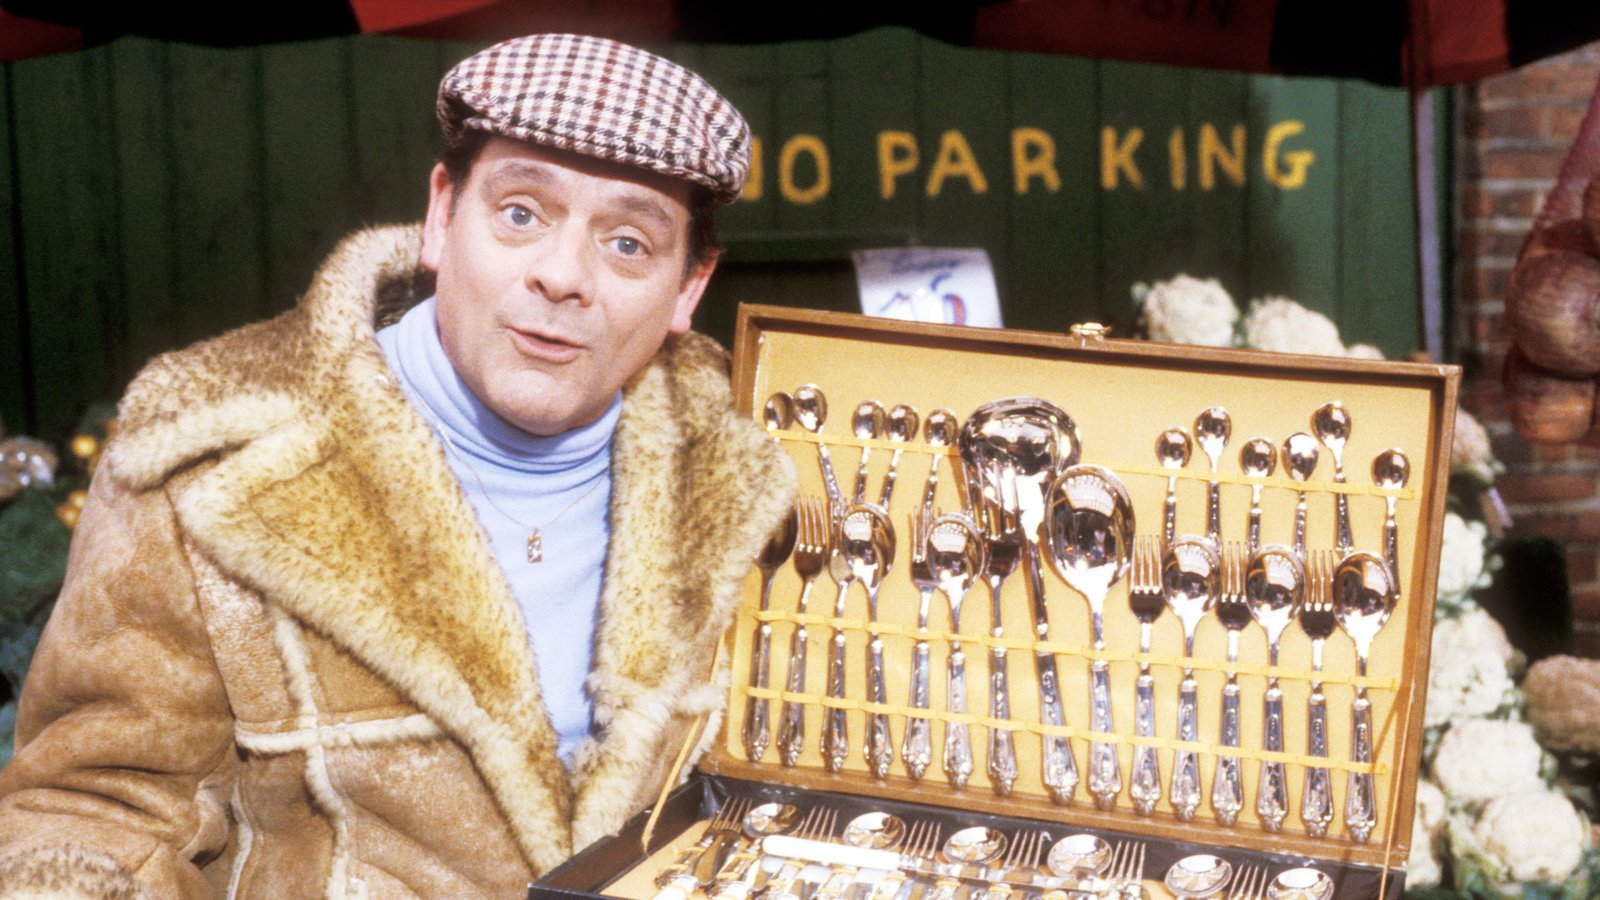 Sir David Jason as Del Boy in Only Fools and Horses